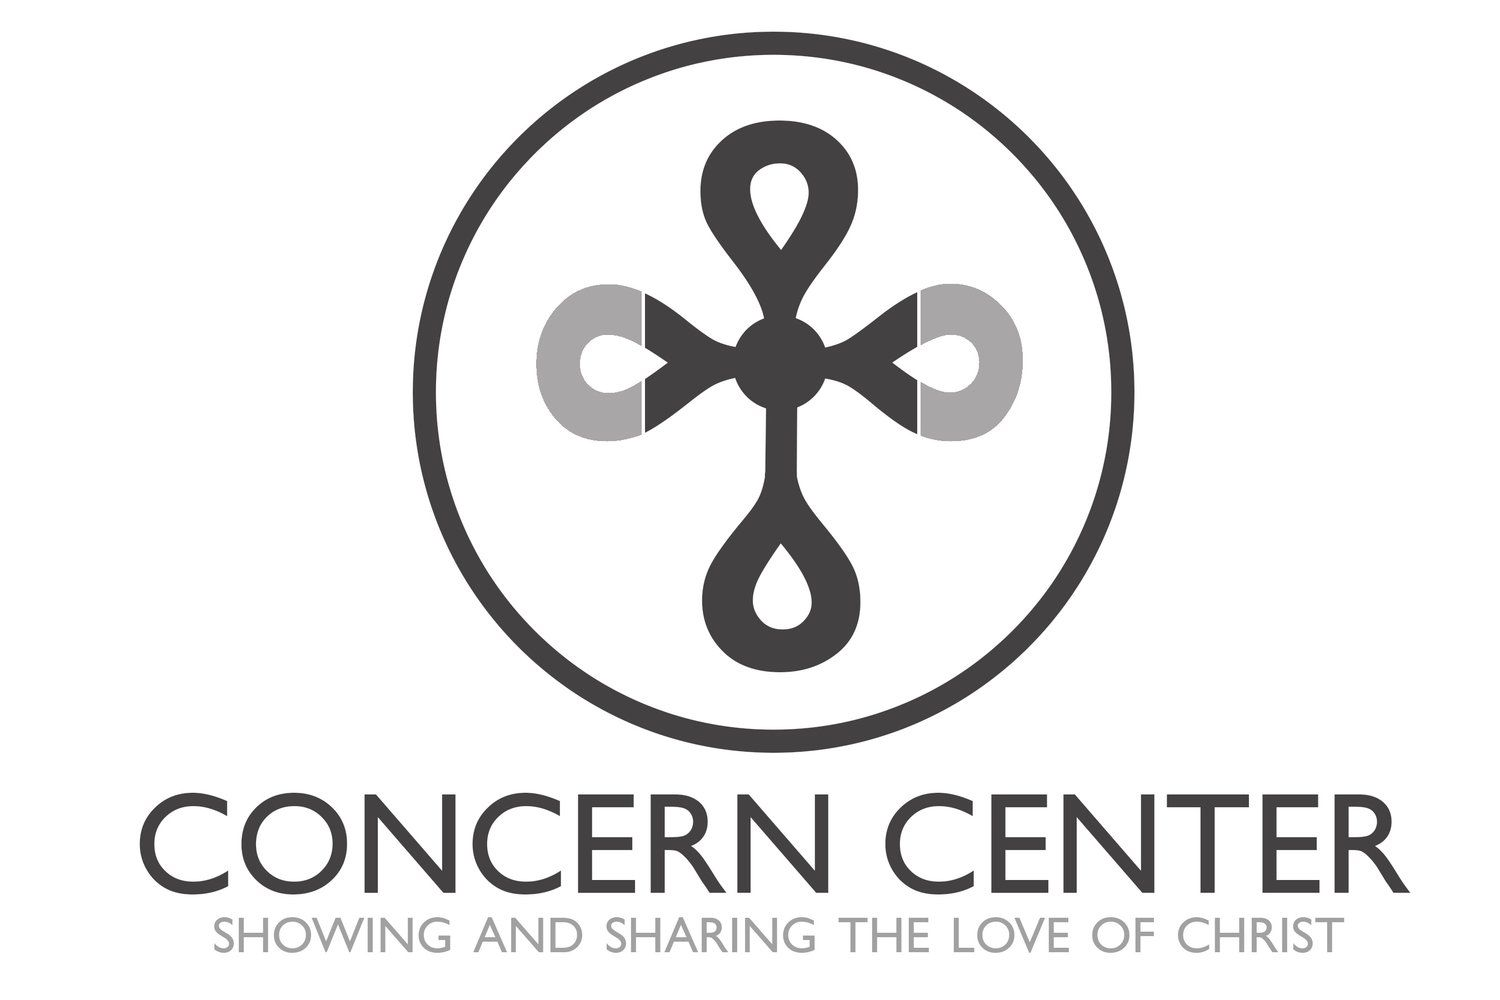 The Concern Center